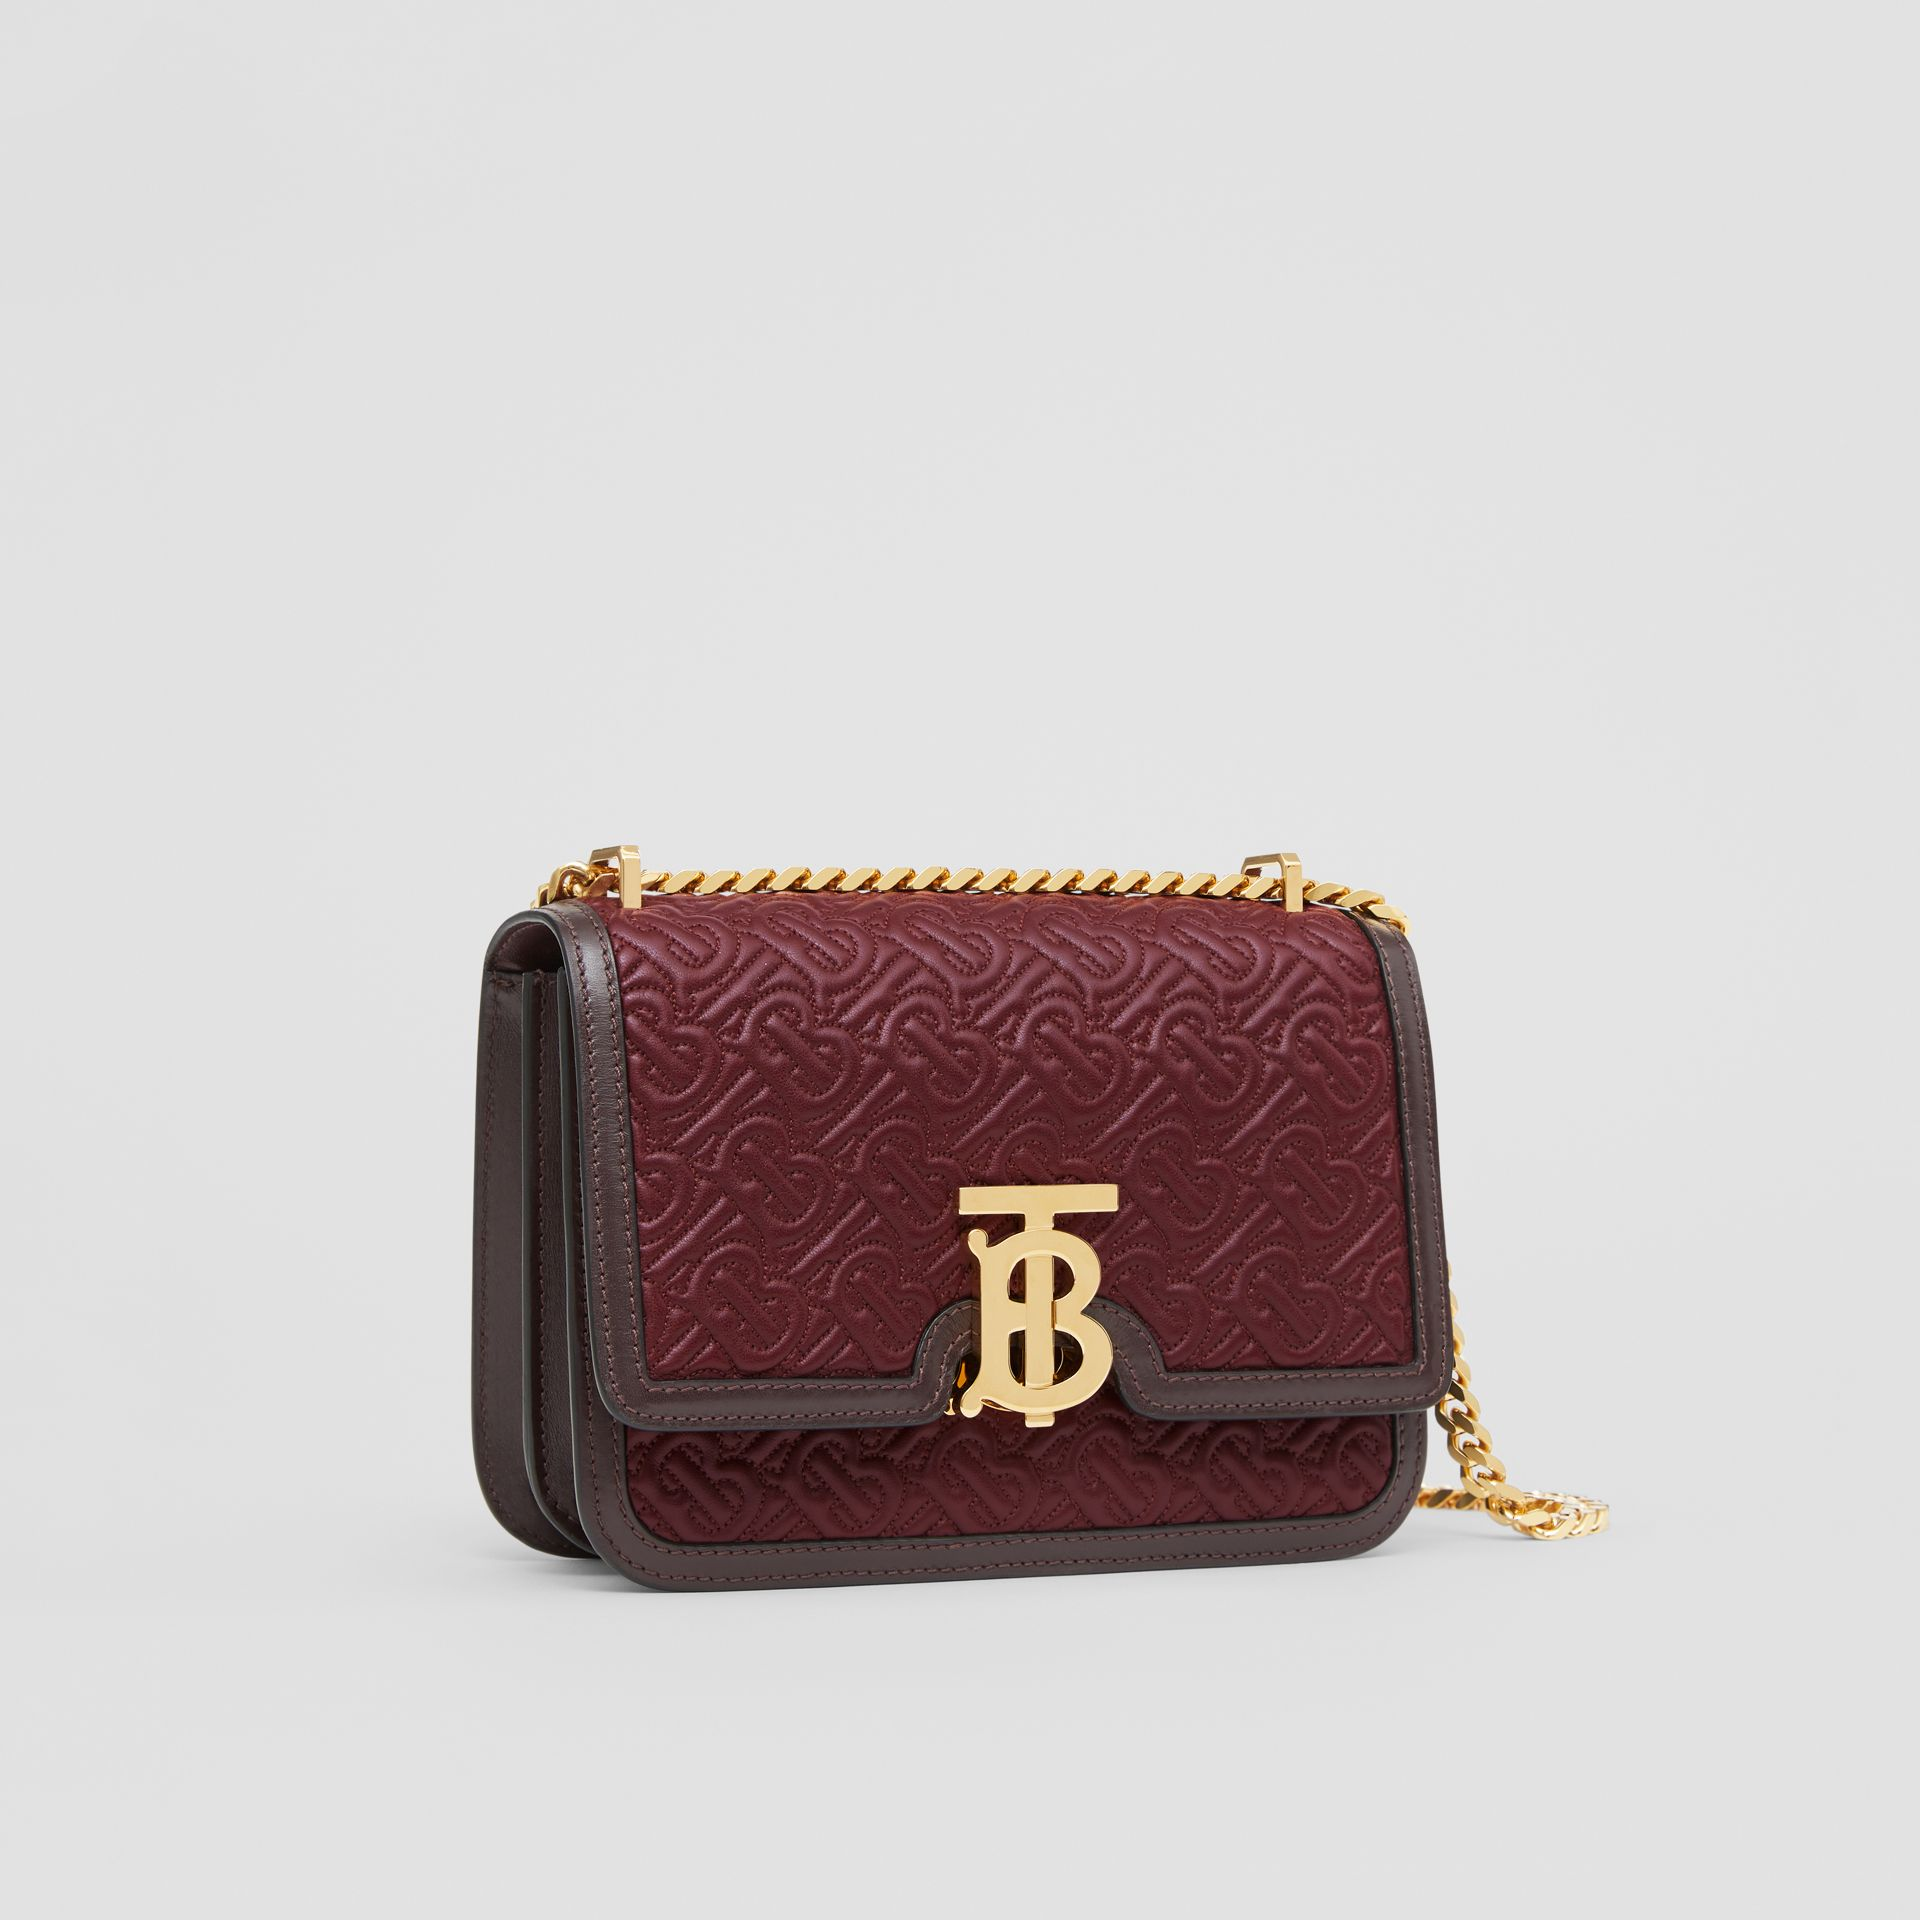 Small Quilted Monogram Lambskin TB Bag in Oxblood - Women | Burberry - gallery image 6